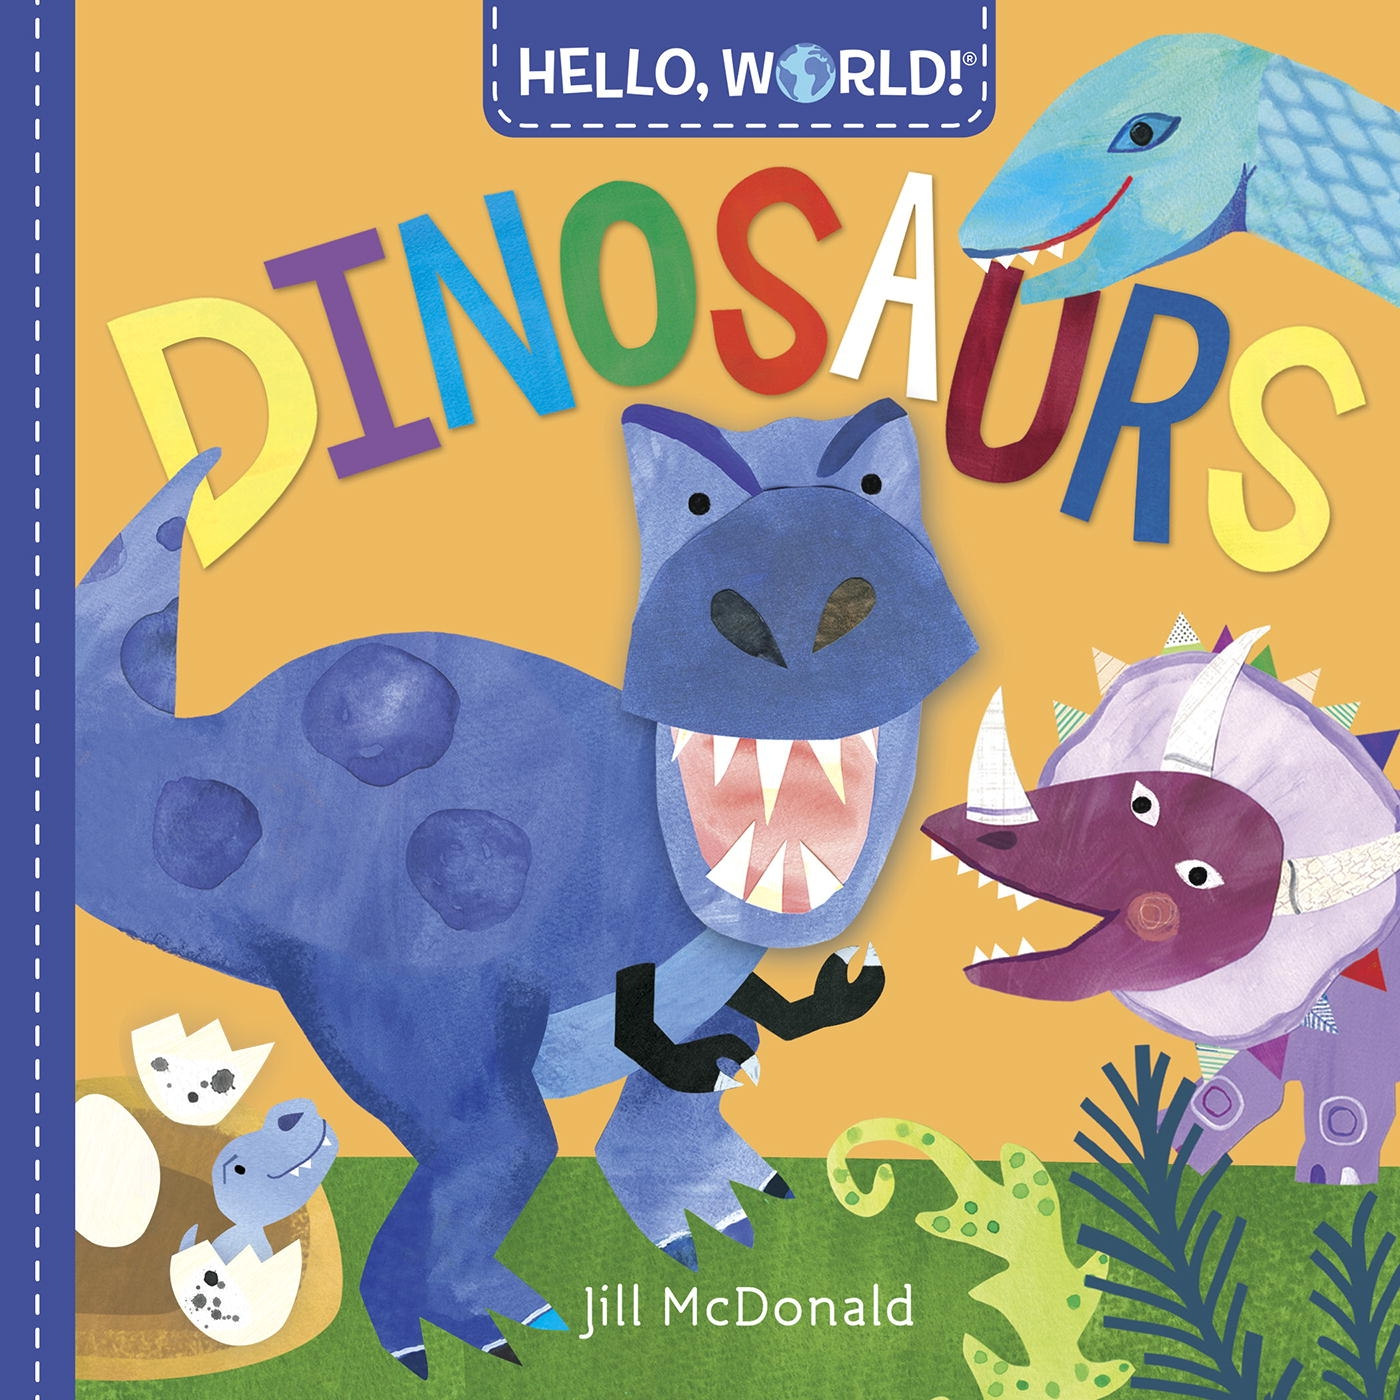 Hello, World! Dinosaurs